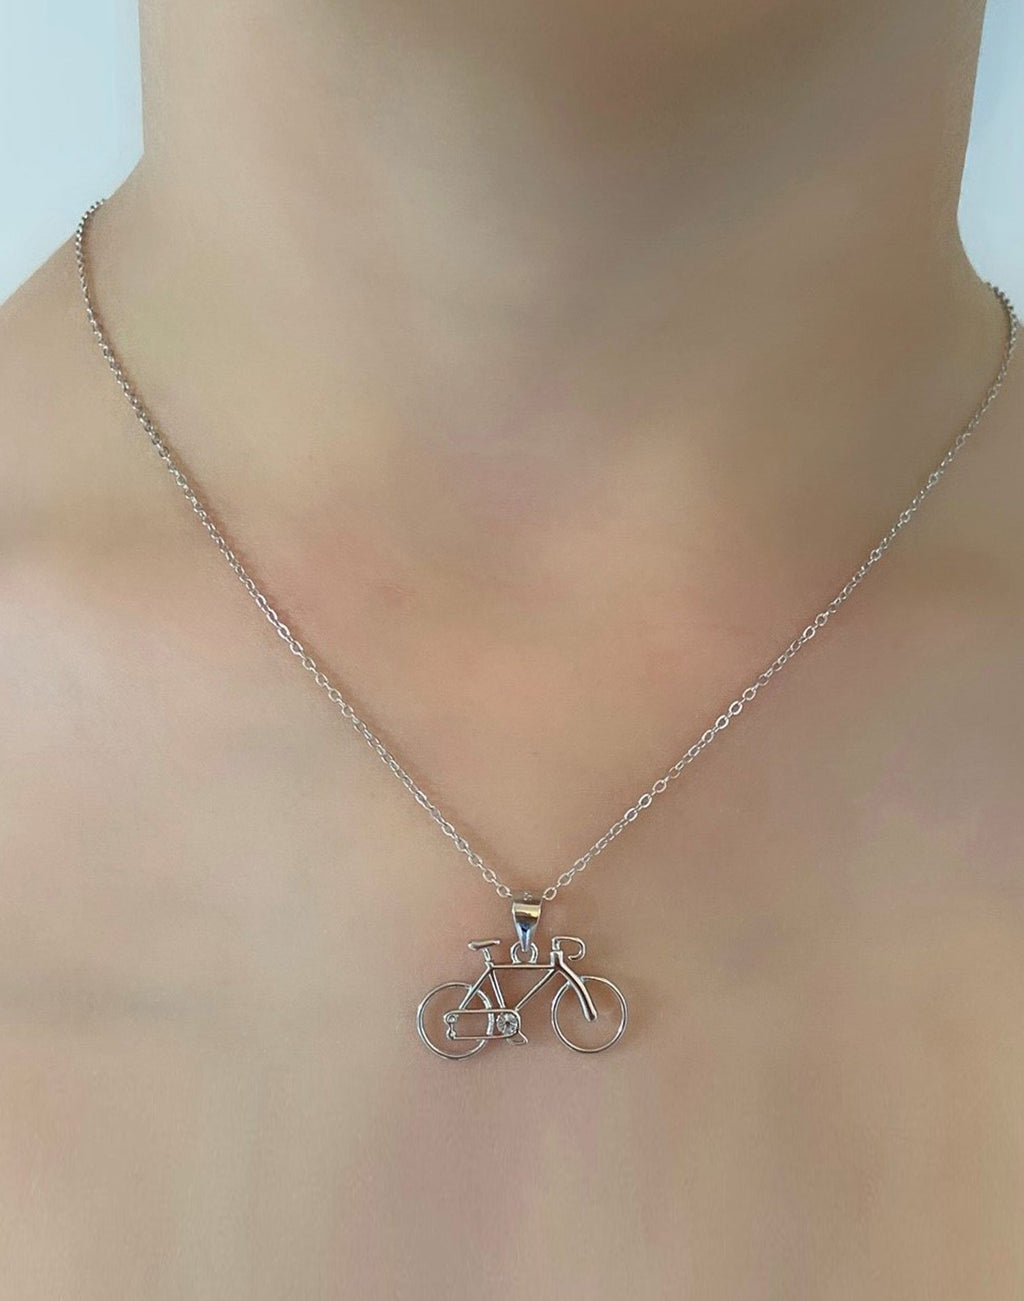 Bicycle Necklace with Pendant